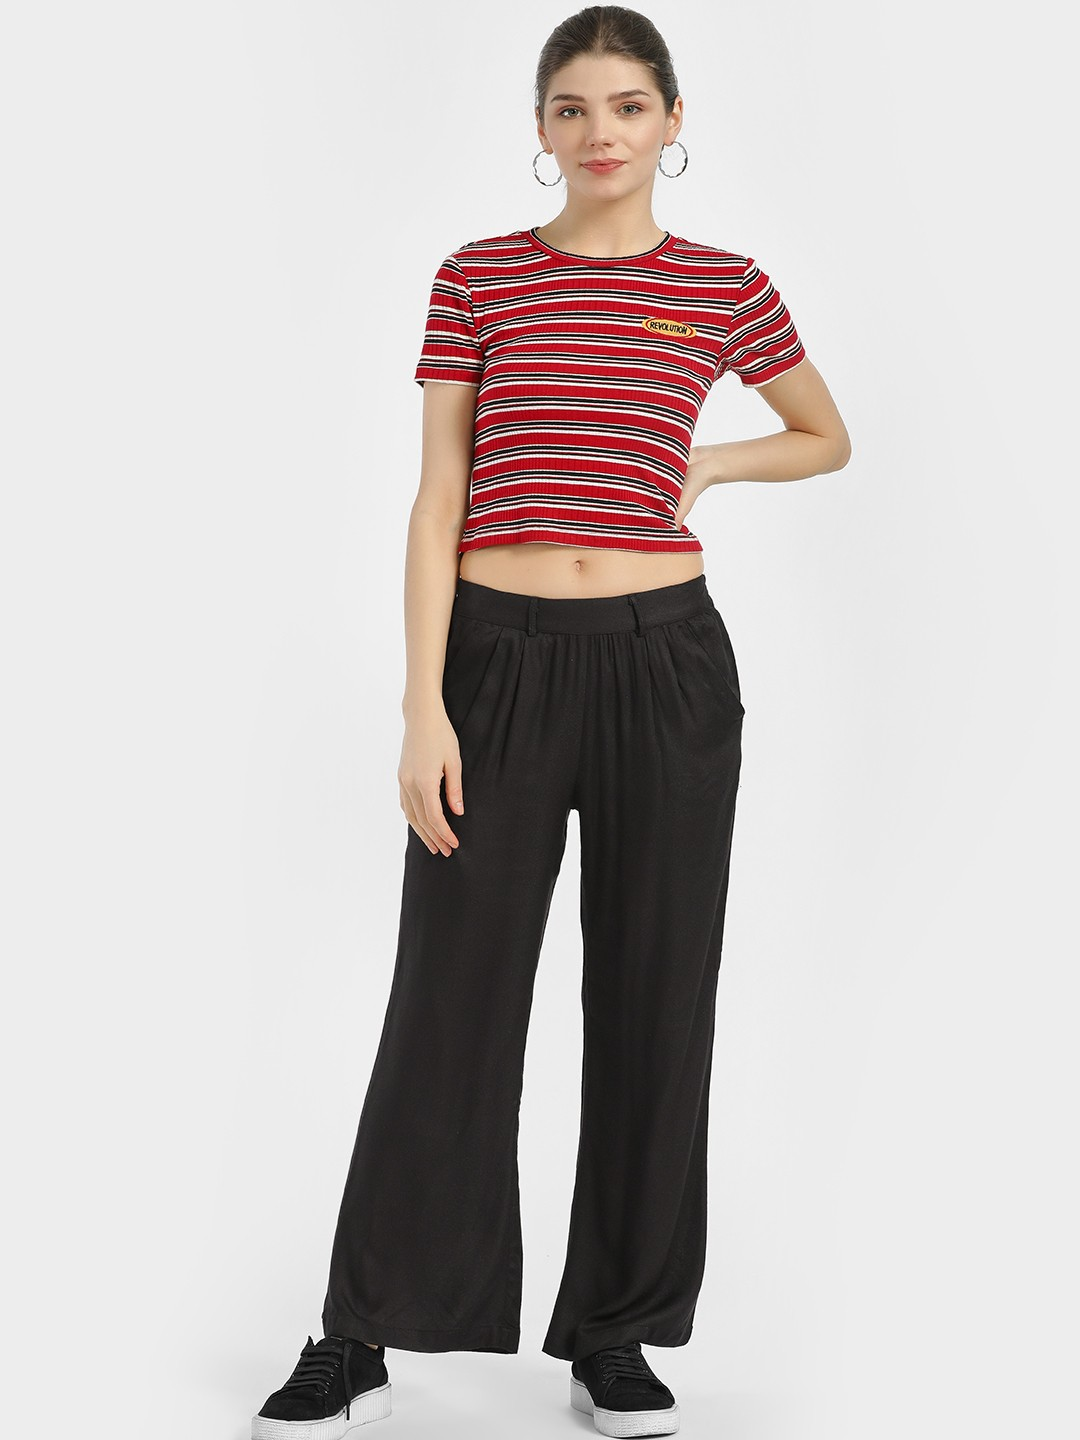 MIWAY Black Woven & Elasticated Waist Trousers 1